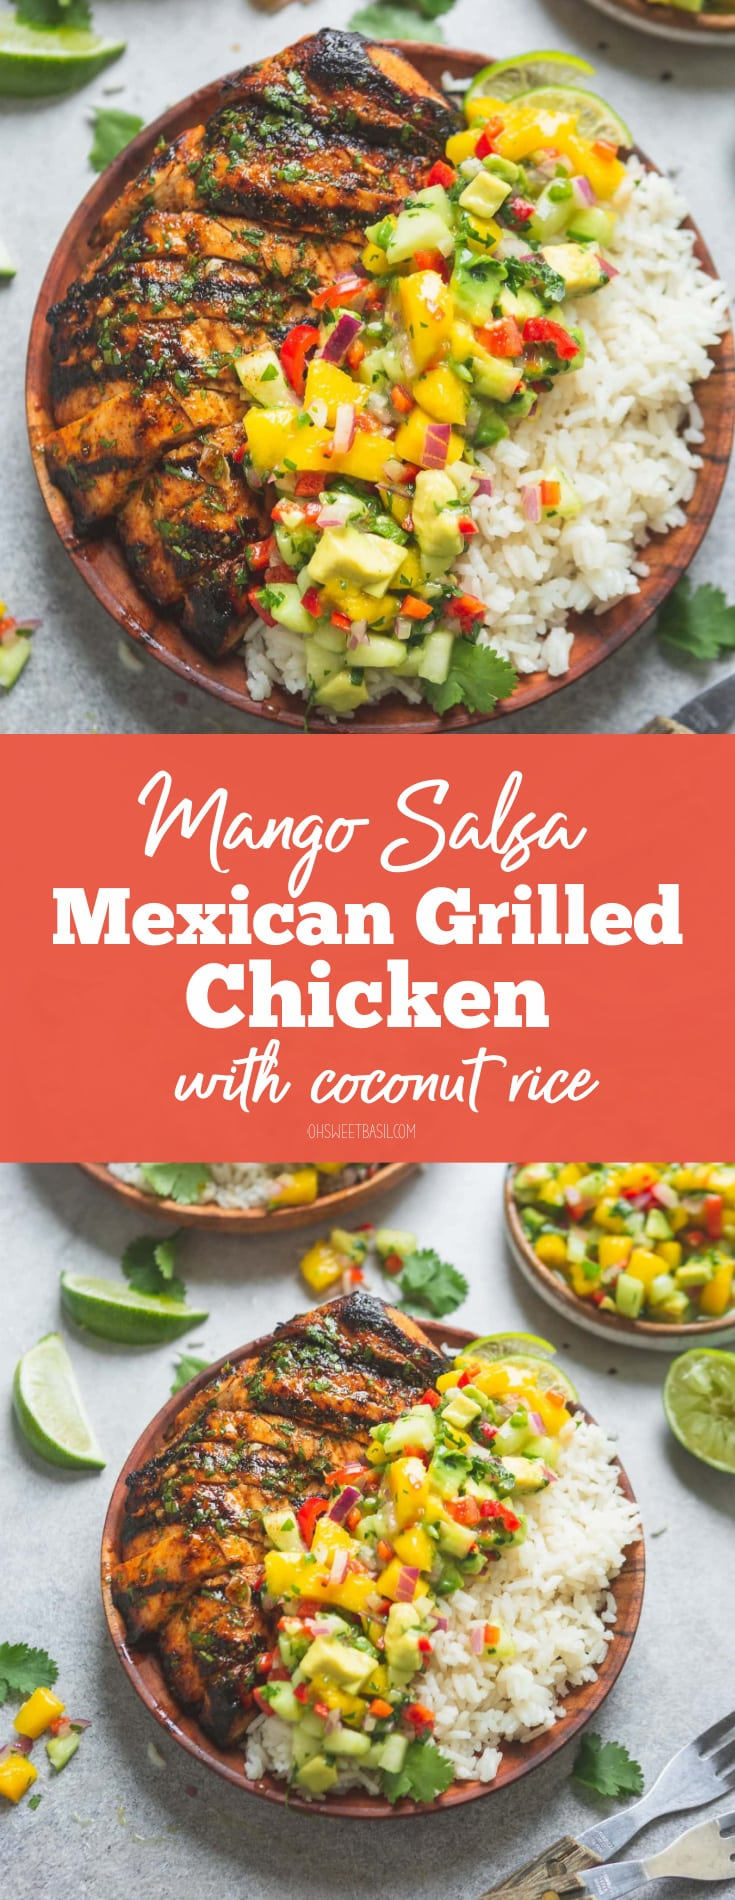 A plate filled with grilled chicken and coconut rice that has been topped with mango salsa. The mango salsa is bright with chunks of mango, peppers and cilantro. There are lime wedges and other plates of chicken, rice and salsa in the background.